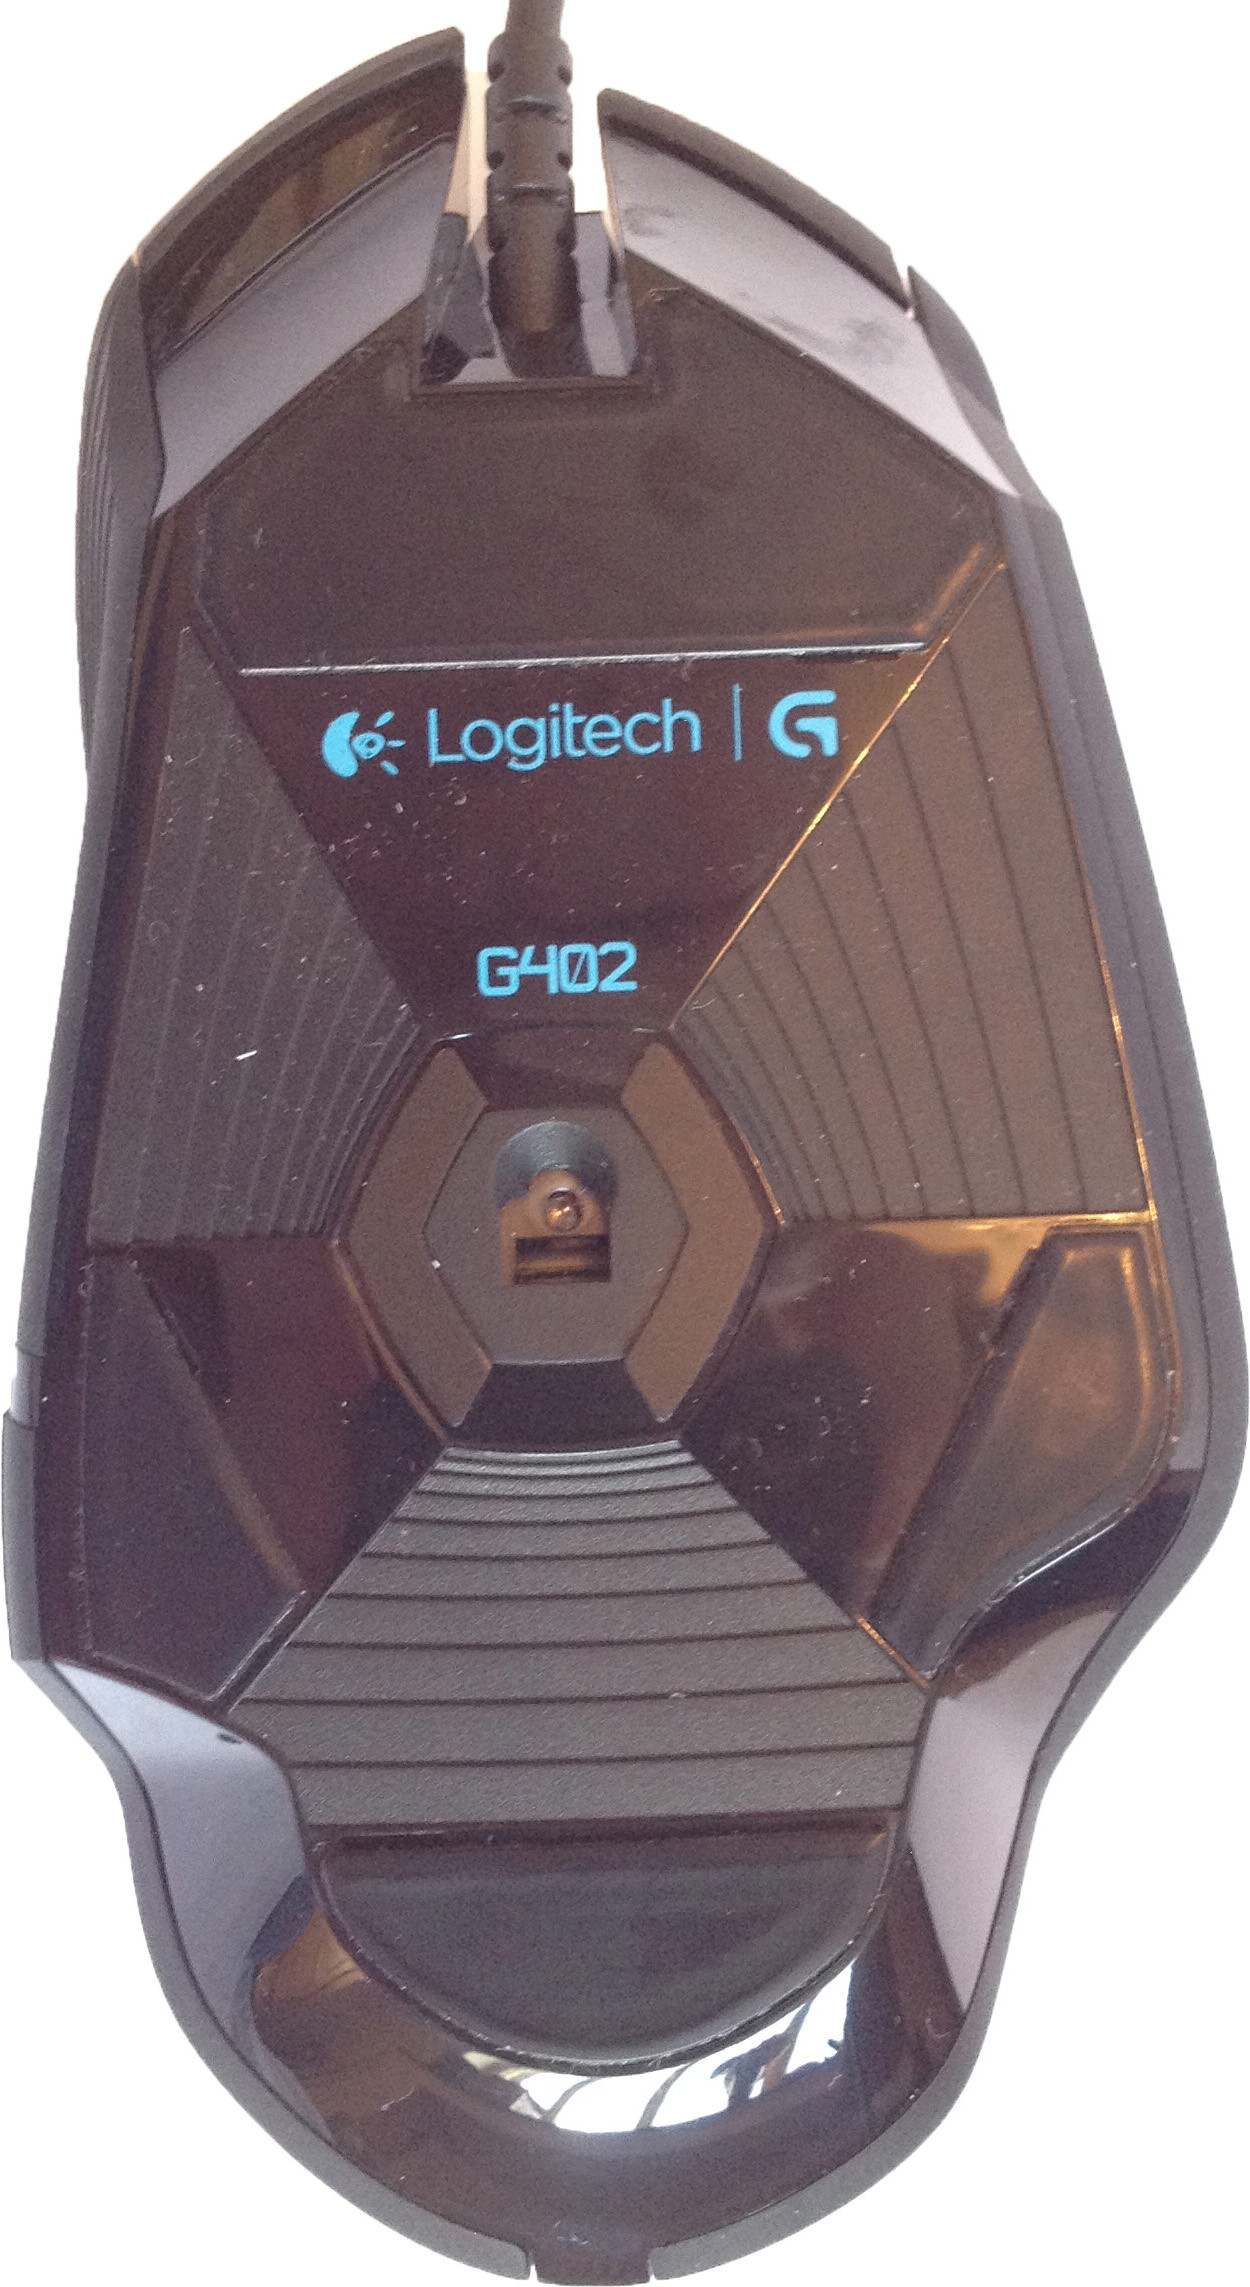 Logitech G402 Hyperion Fury Gaming Mouse review - by Ino - Overclock